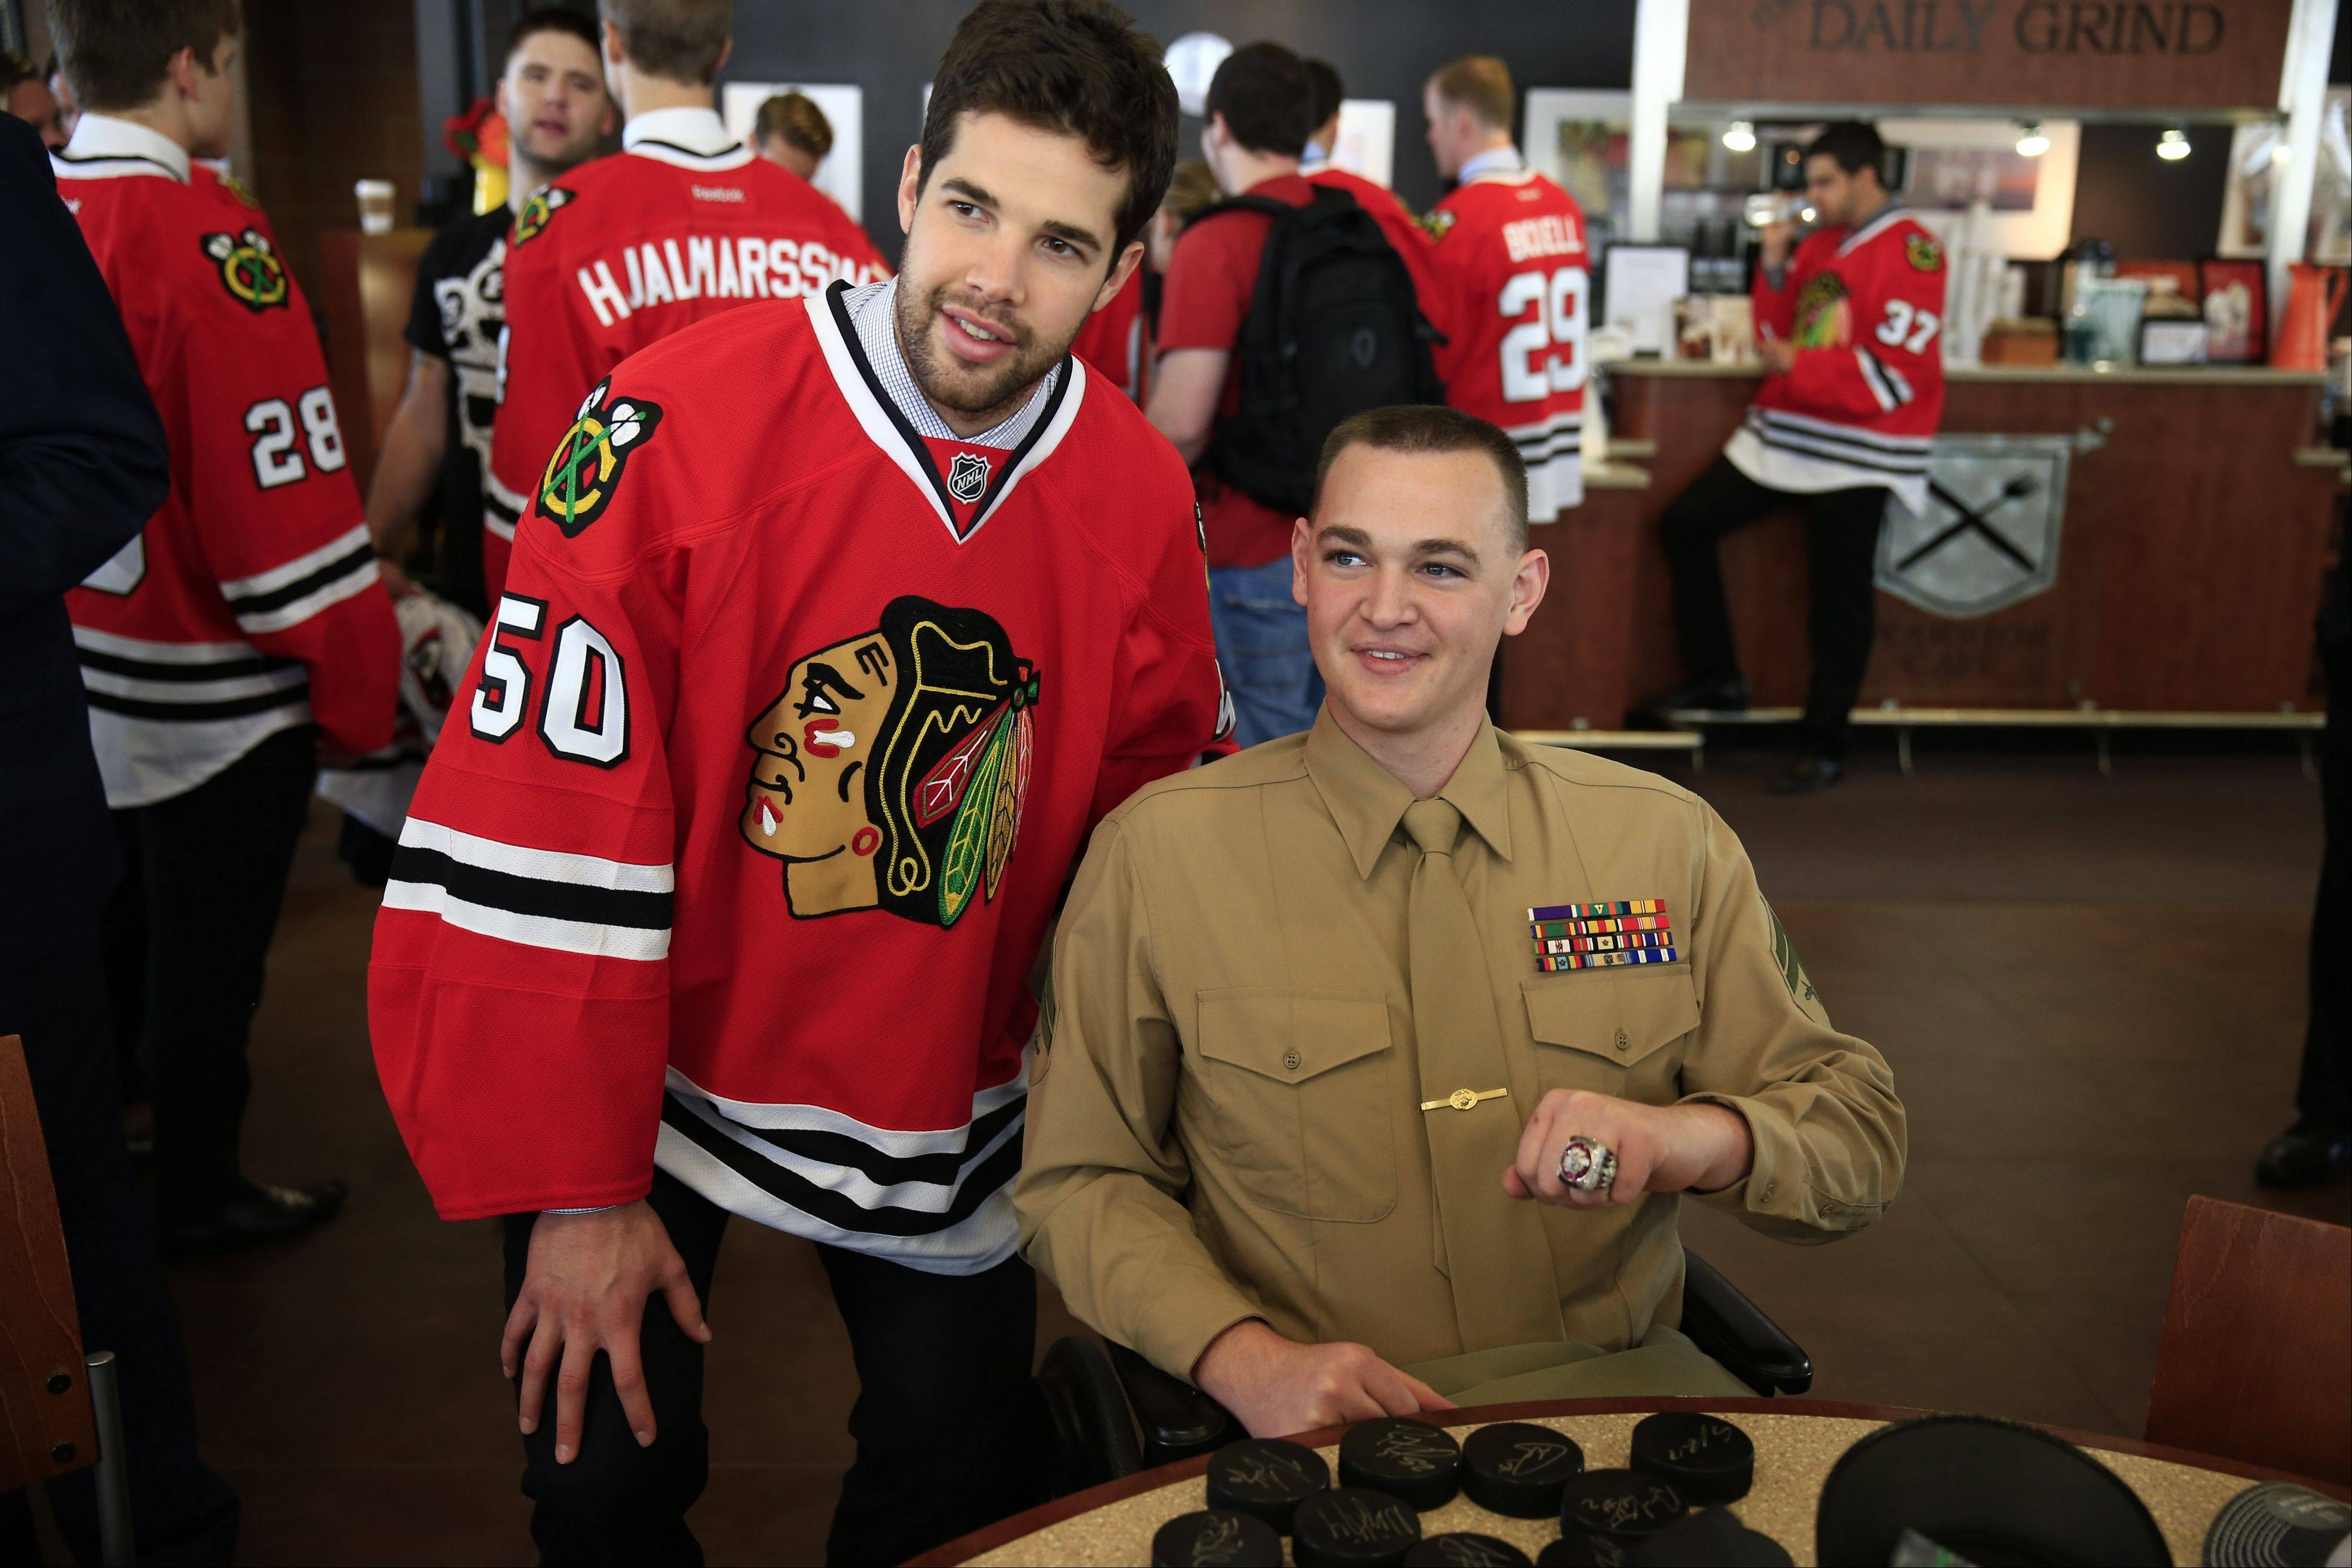 Corey Crawford and all the other Blackhawks at the Walter Reed National Military Medical Center obliged a double amputee who had a bag full of hockey pucks needing autographs.